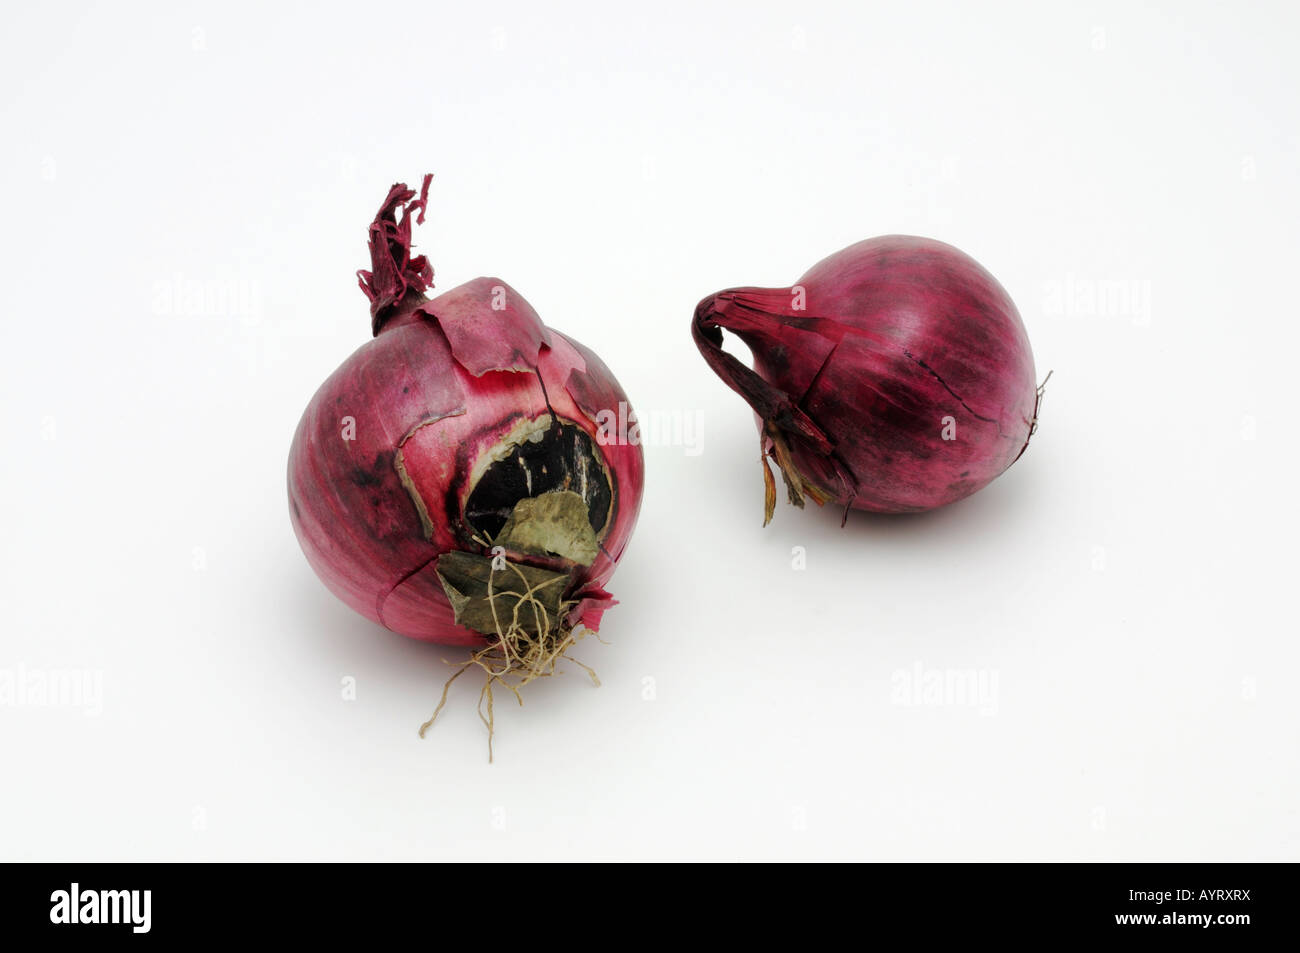 Red onions - Stock Image